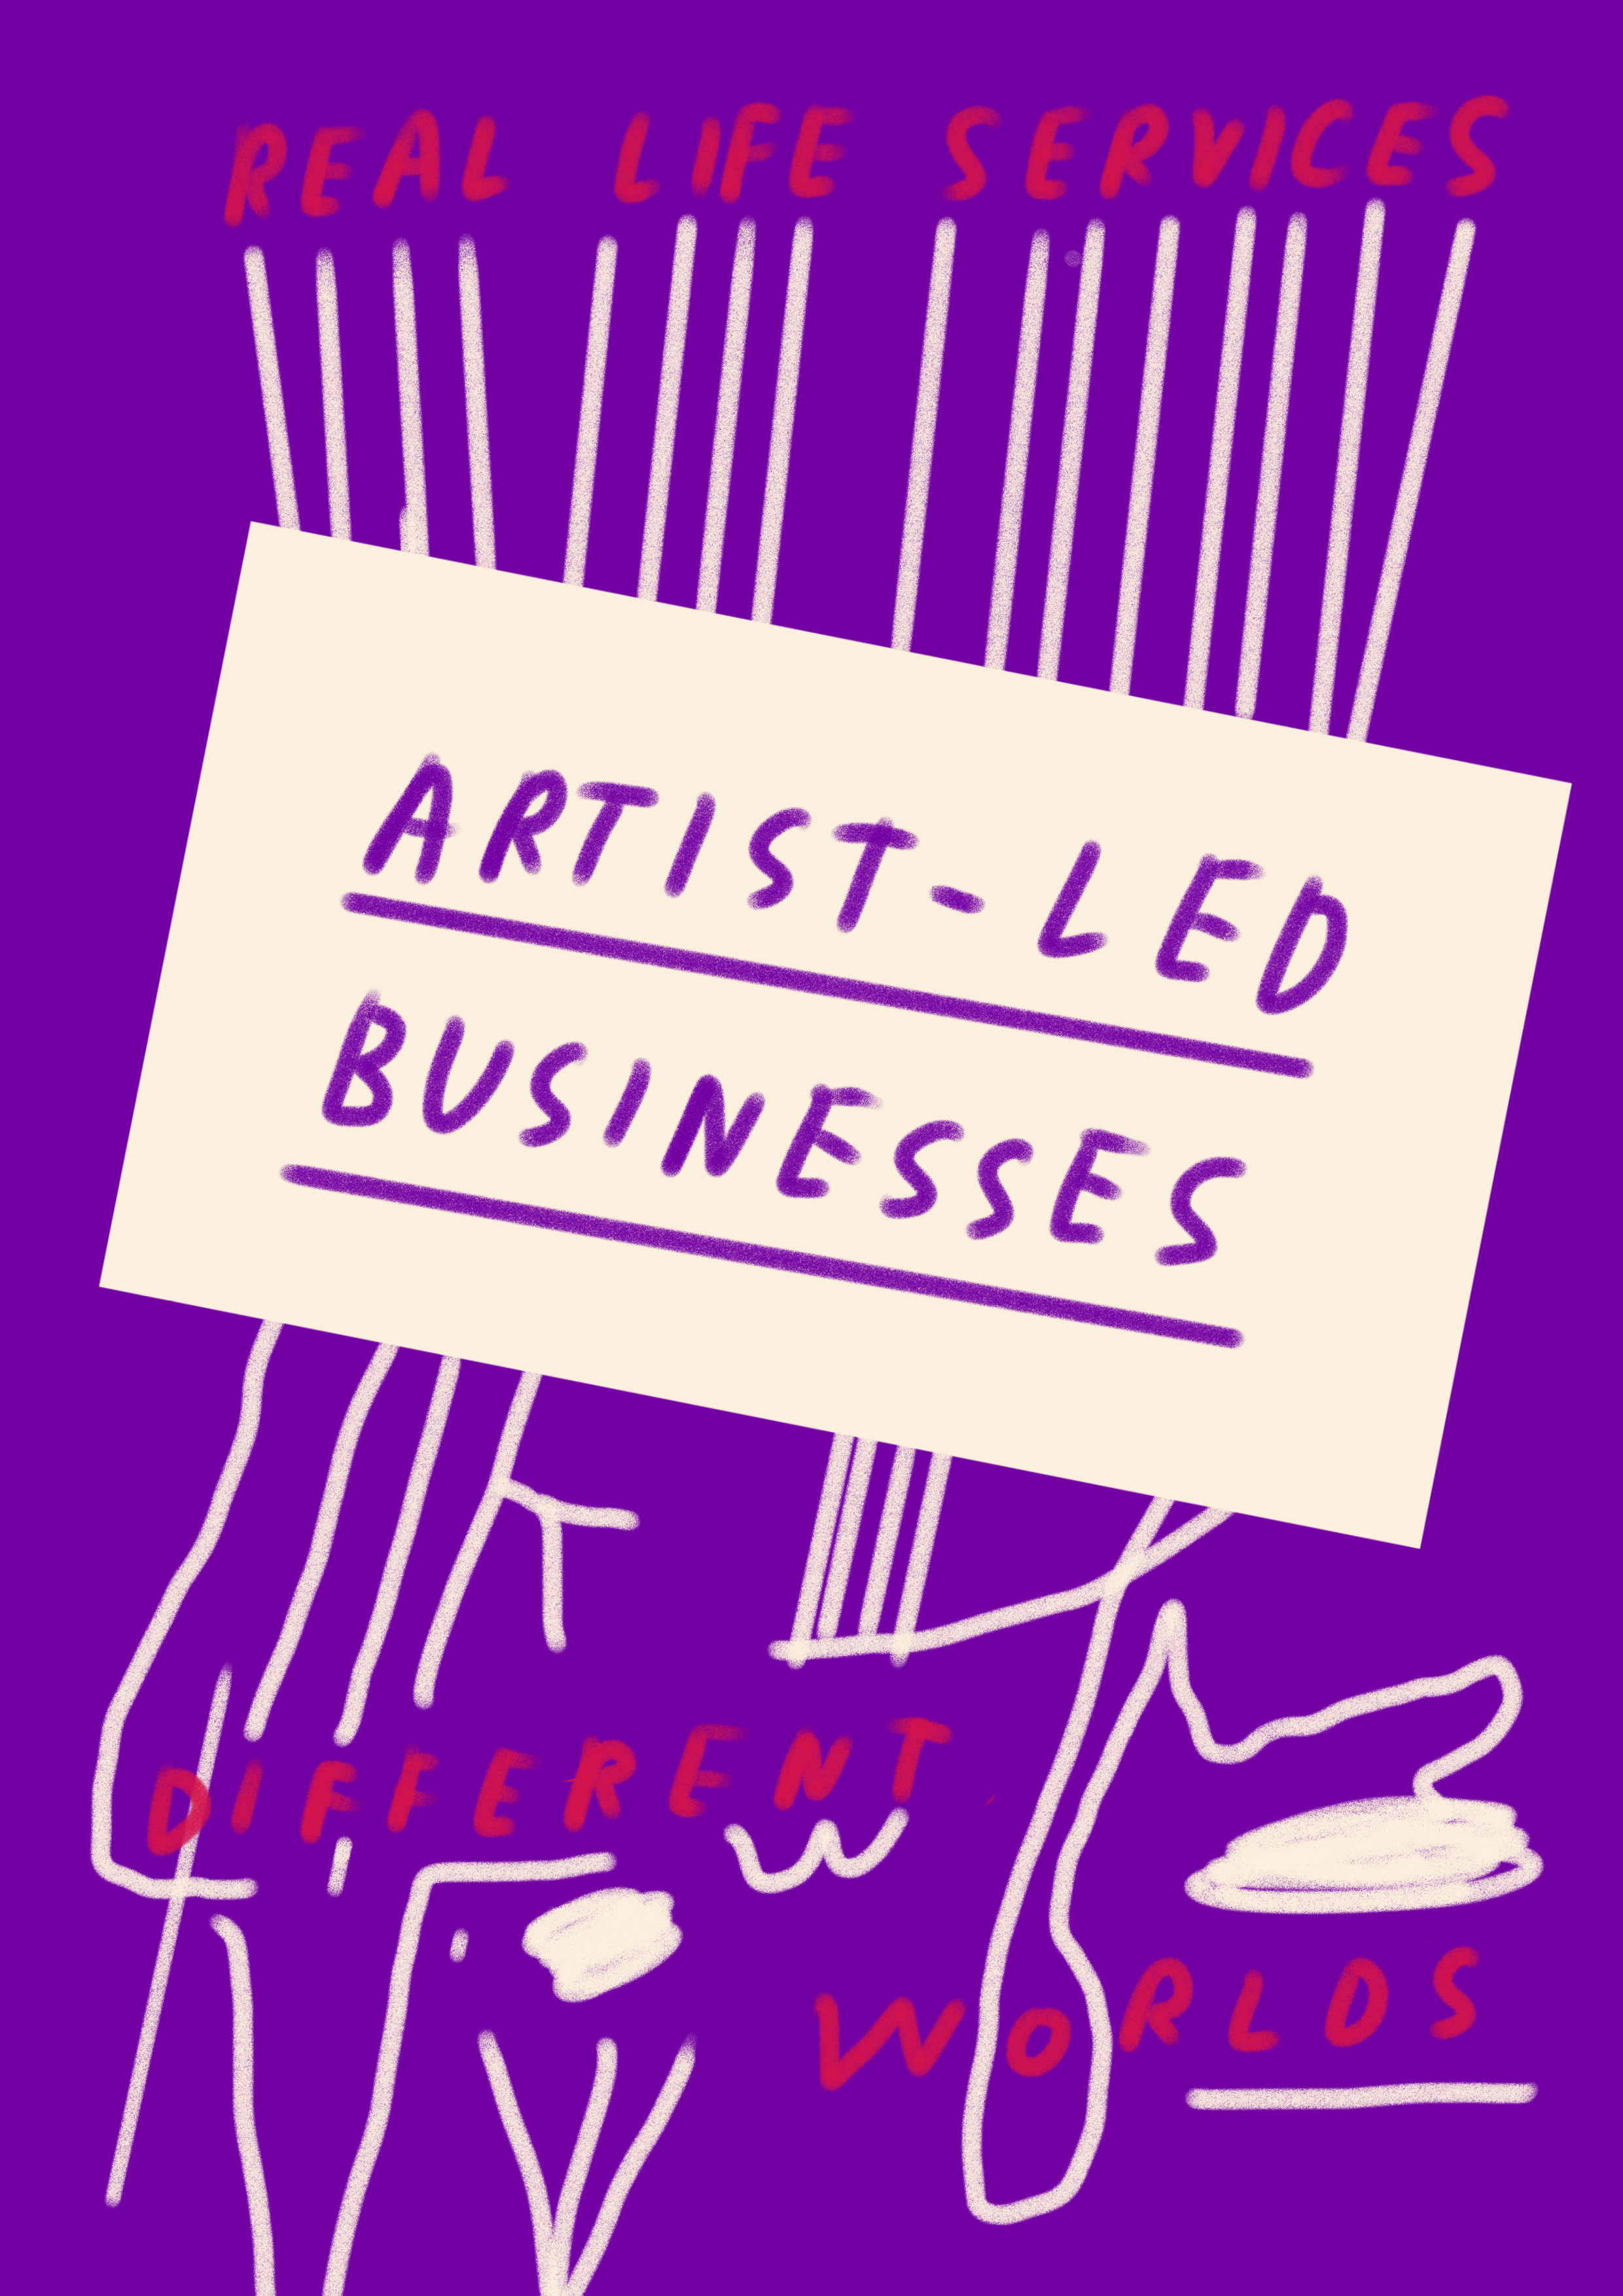 """Illustration that reads """"Real life services - Artist-led businesses - Different worlds"""""""